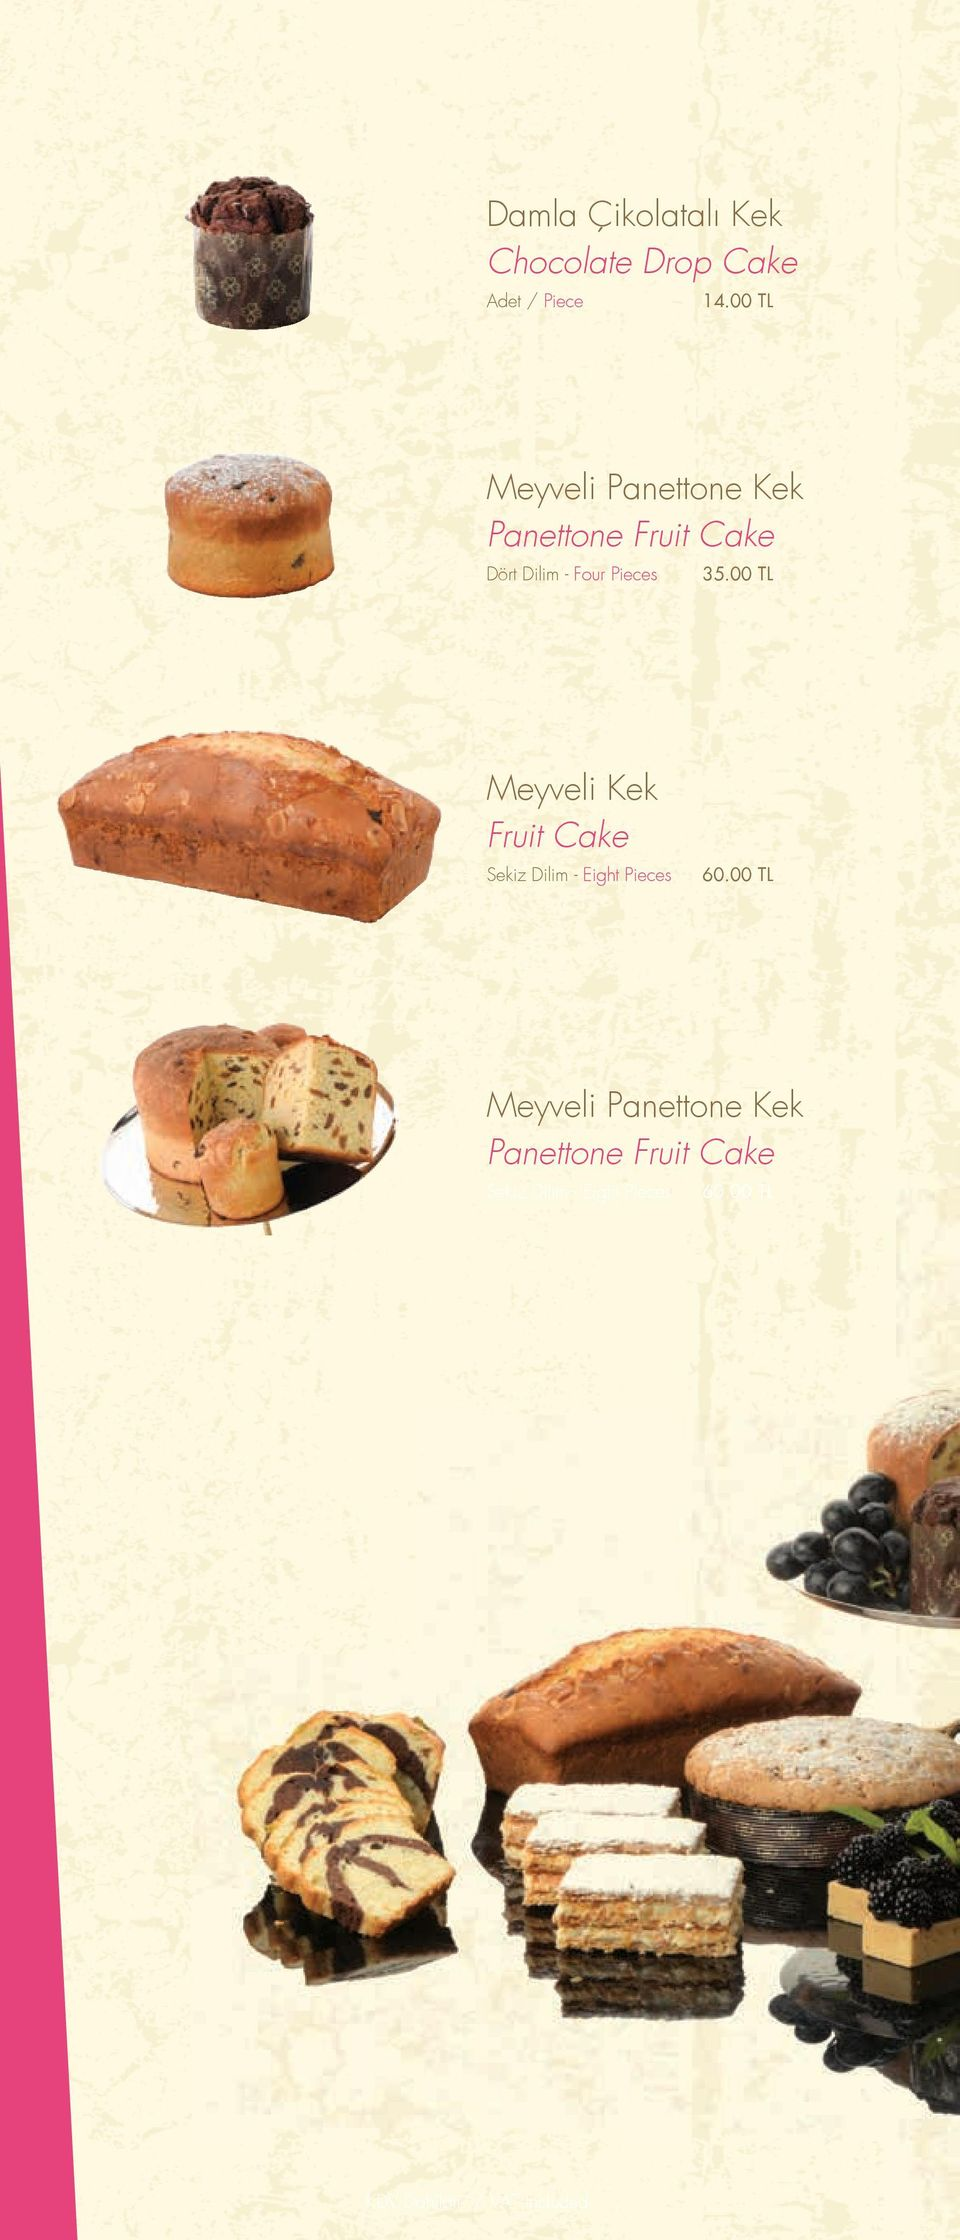 Four Pieces 35.00 TL Meyveli Kek Fruit Cake 60.